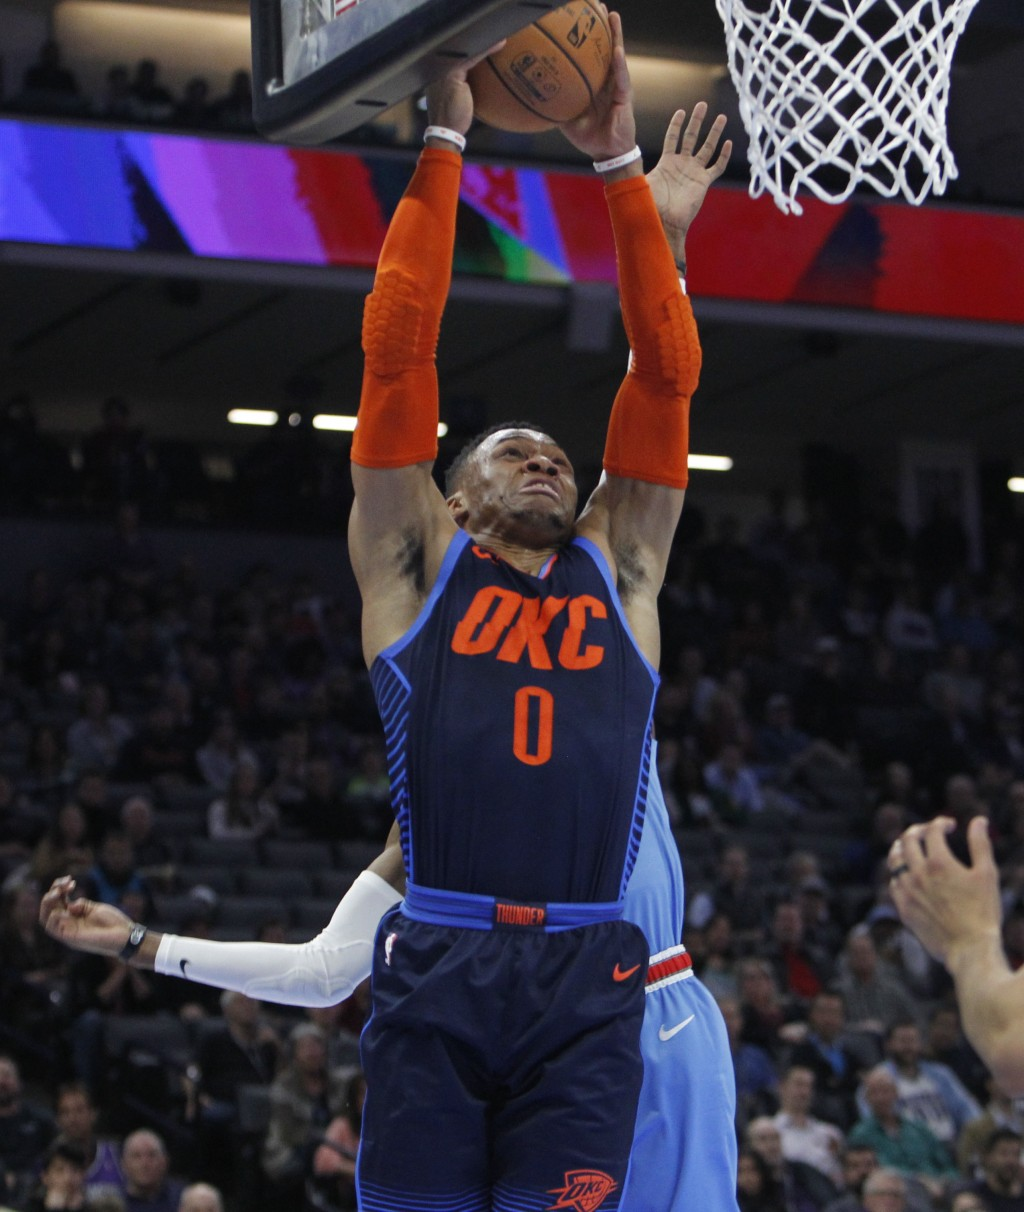 Oklahoma City Thunder guard Russell Westbrook (0) drives to the basket against the Sacramento Kings during the first half of an NBA basketball game in